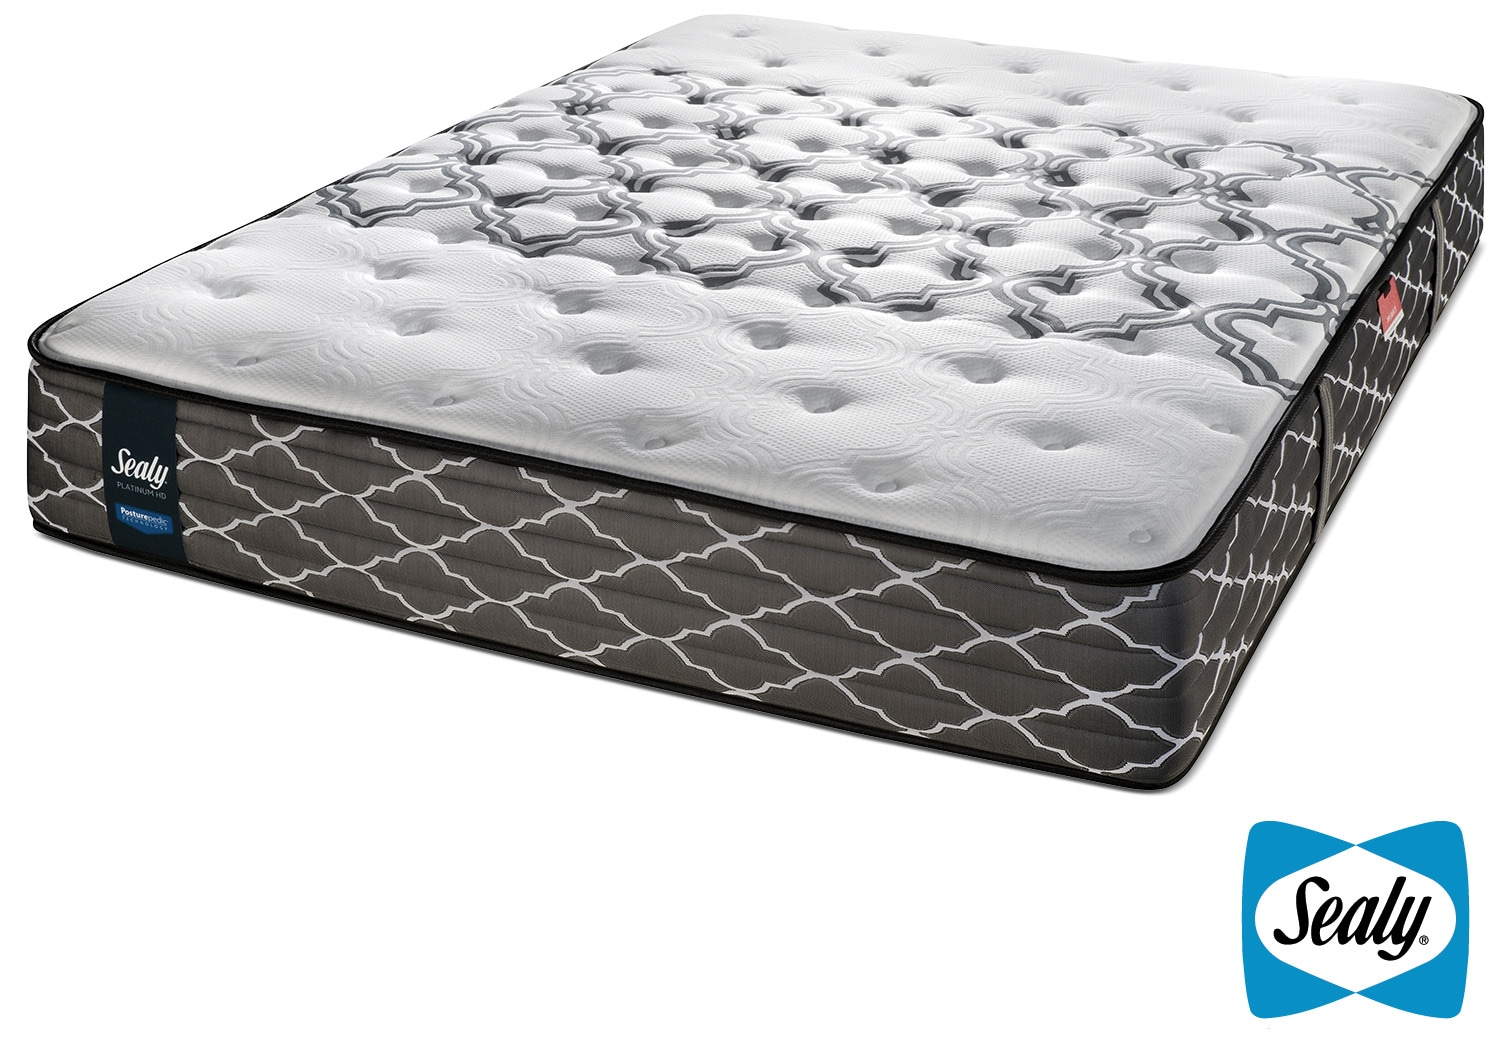 Mattresses and Bedding - Sealy Late Night Hybrid Extra Firm King Mattress